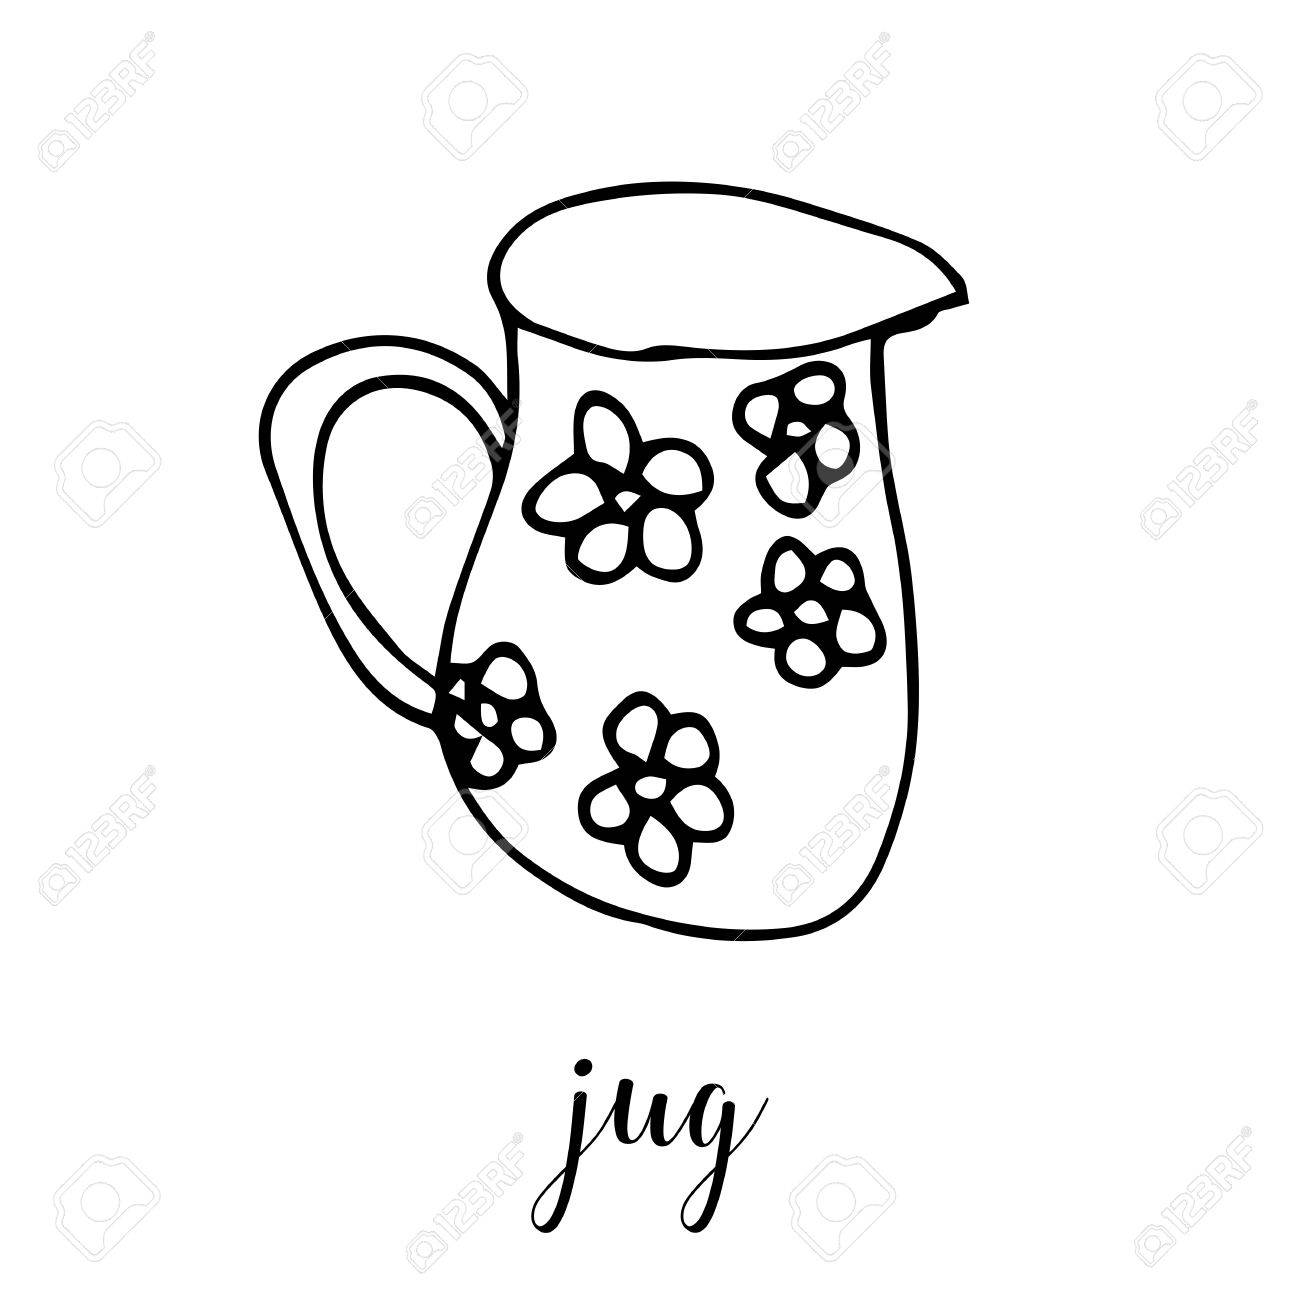 Childrens Drawing A Jug The Template For The Painting Hand Royalty Free Cliparts Vectors And Stock Illustration Image 68974659